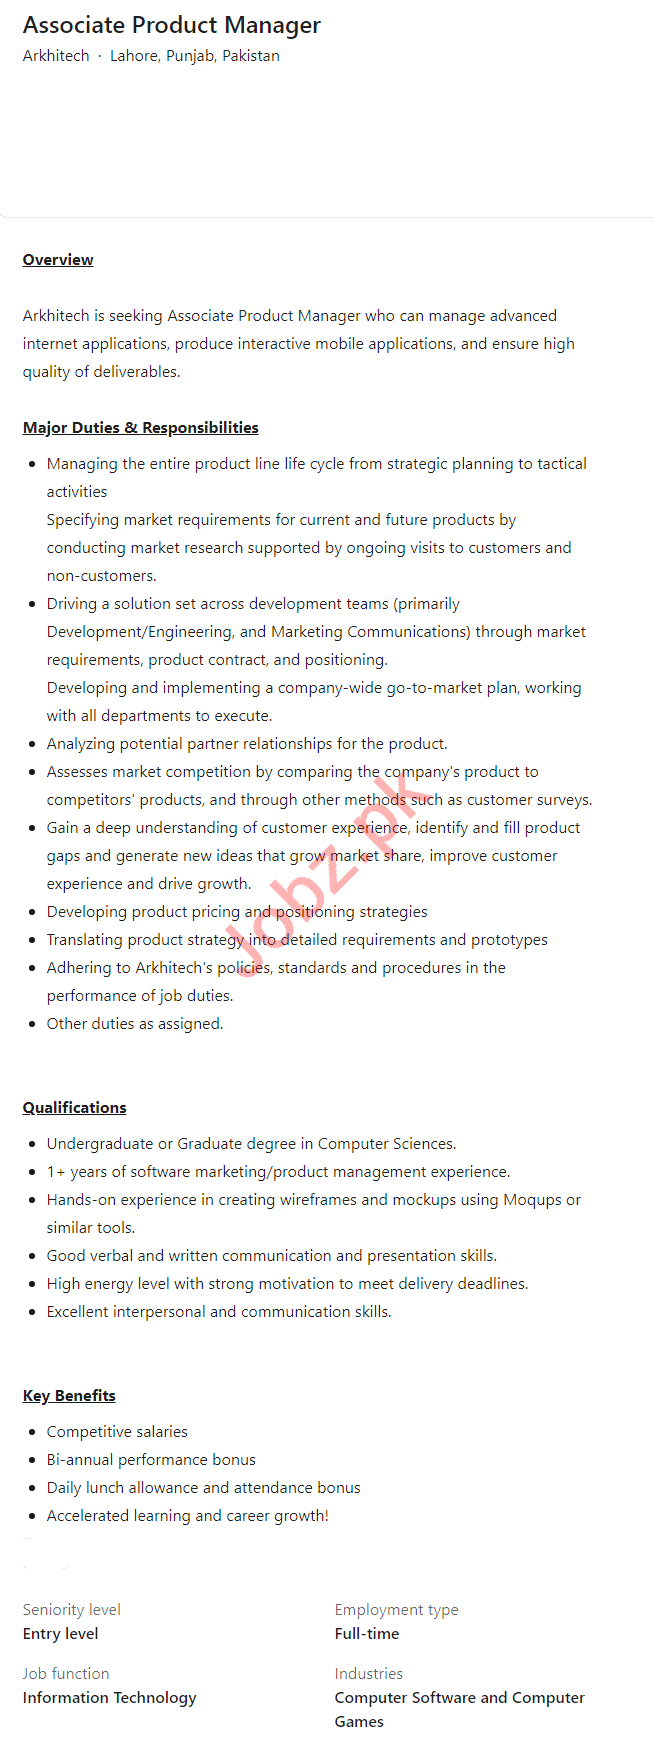 Arkhitech Lahore Jobs 2021 for Associate Product Manager